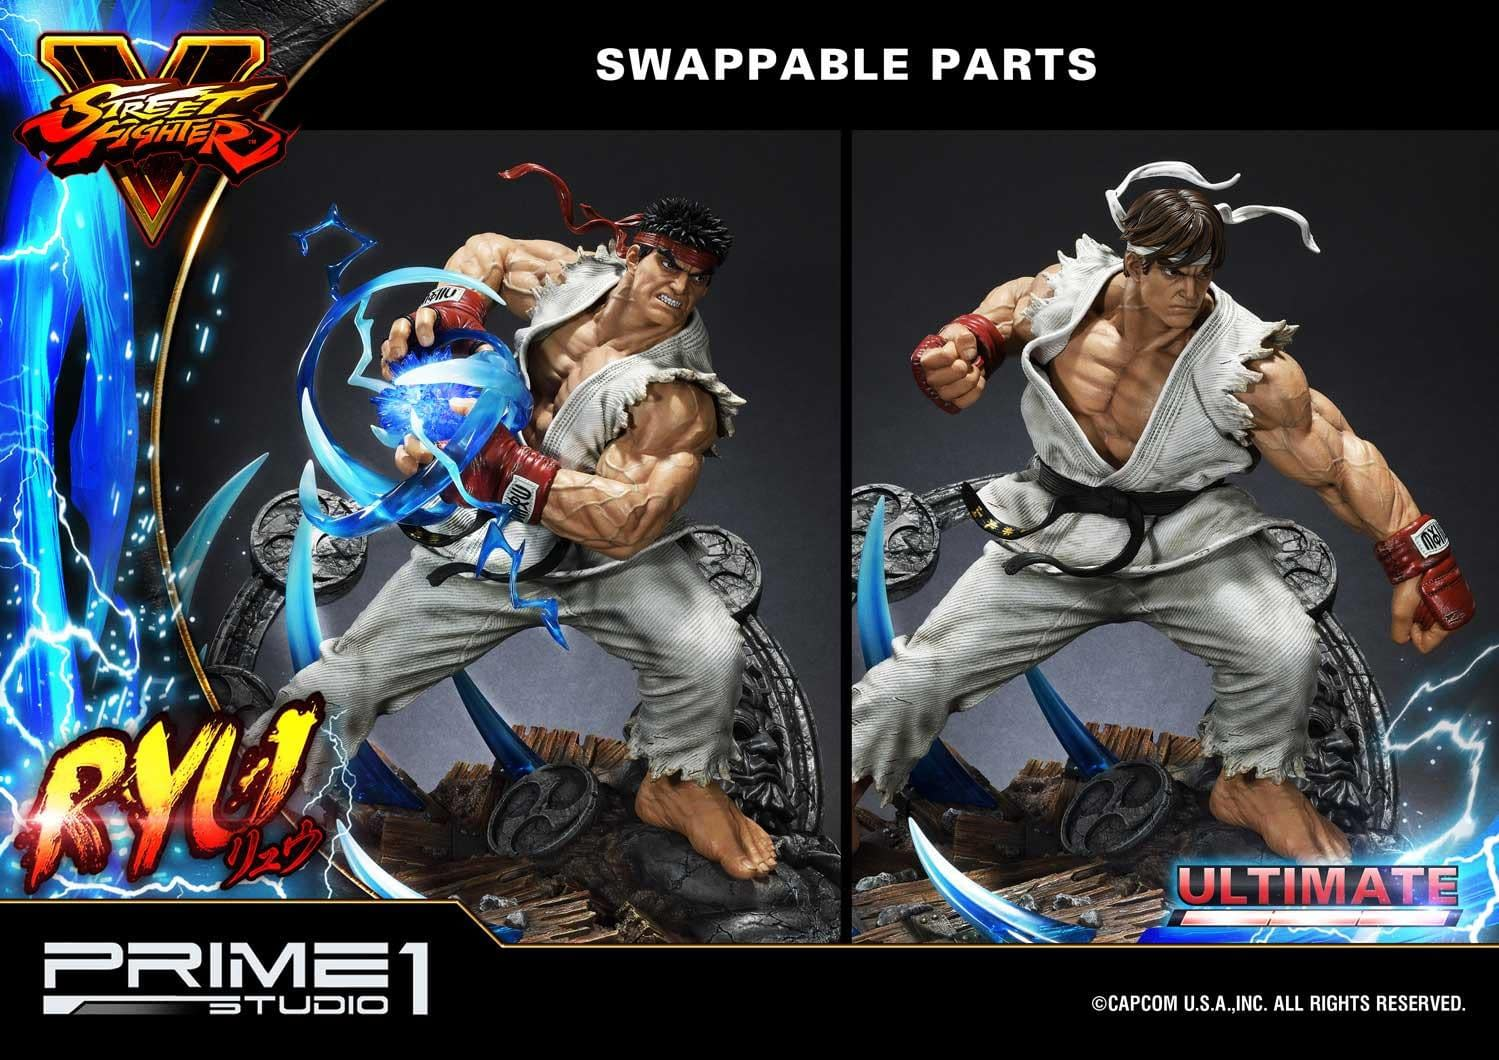 Ryu Is Hadouken Ready In New Street Fighter Prime 1 Studio Statue